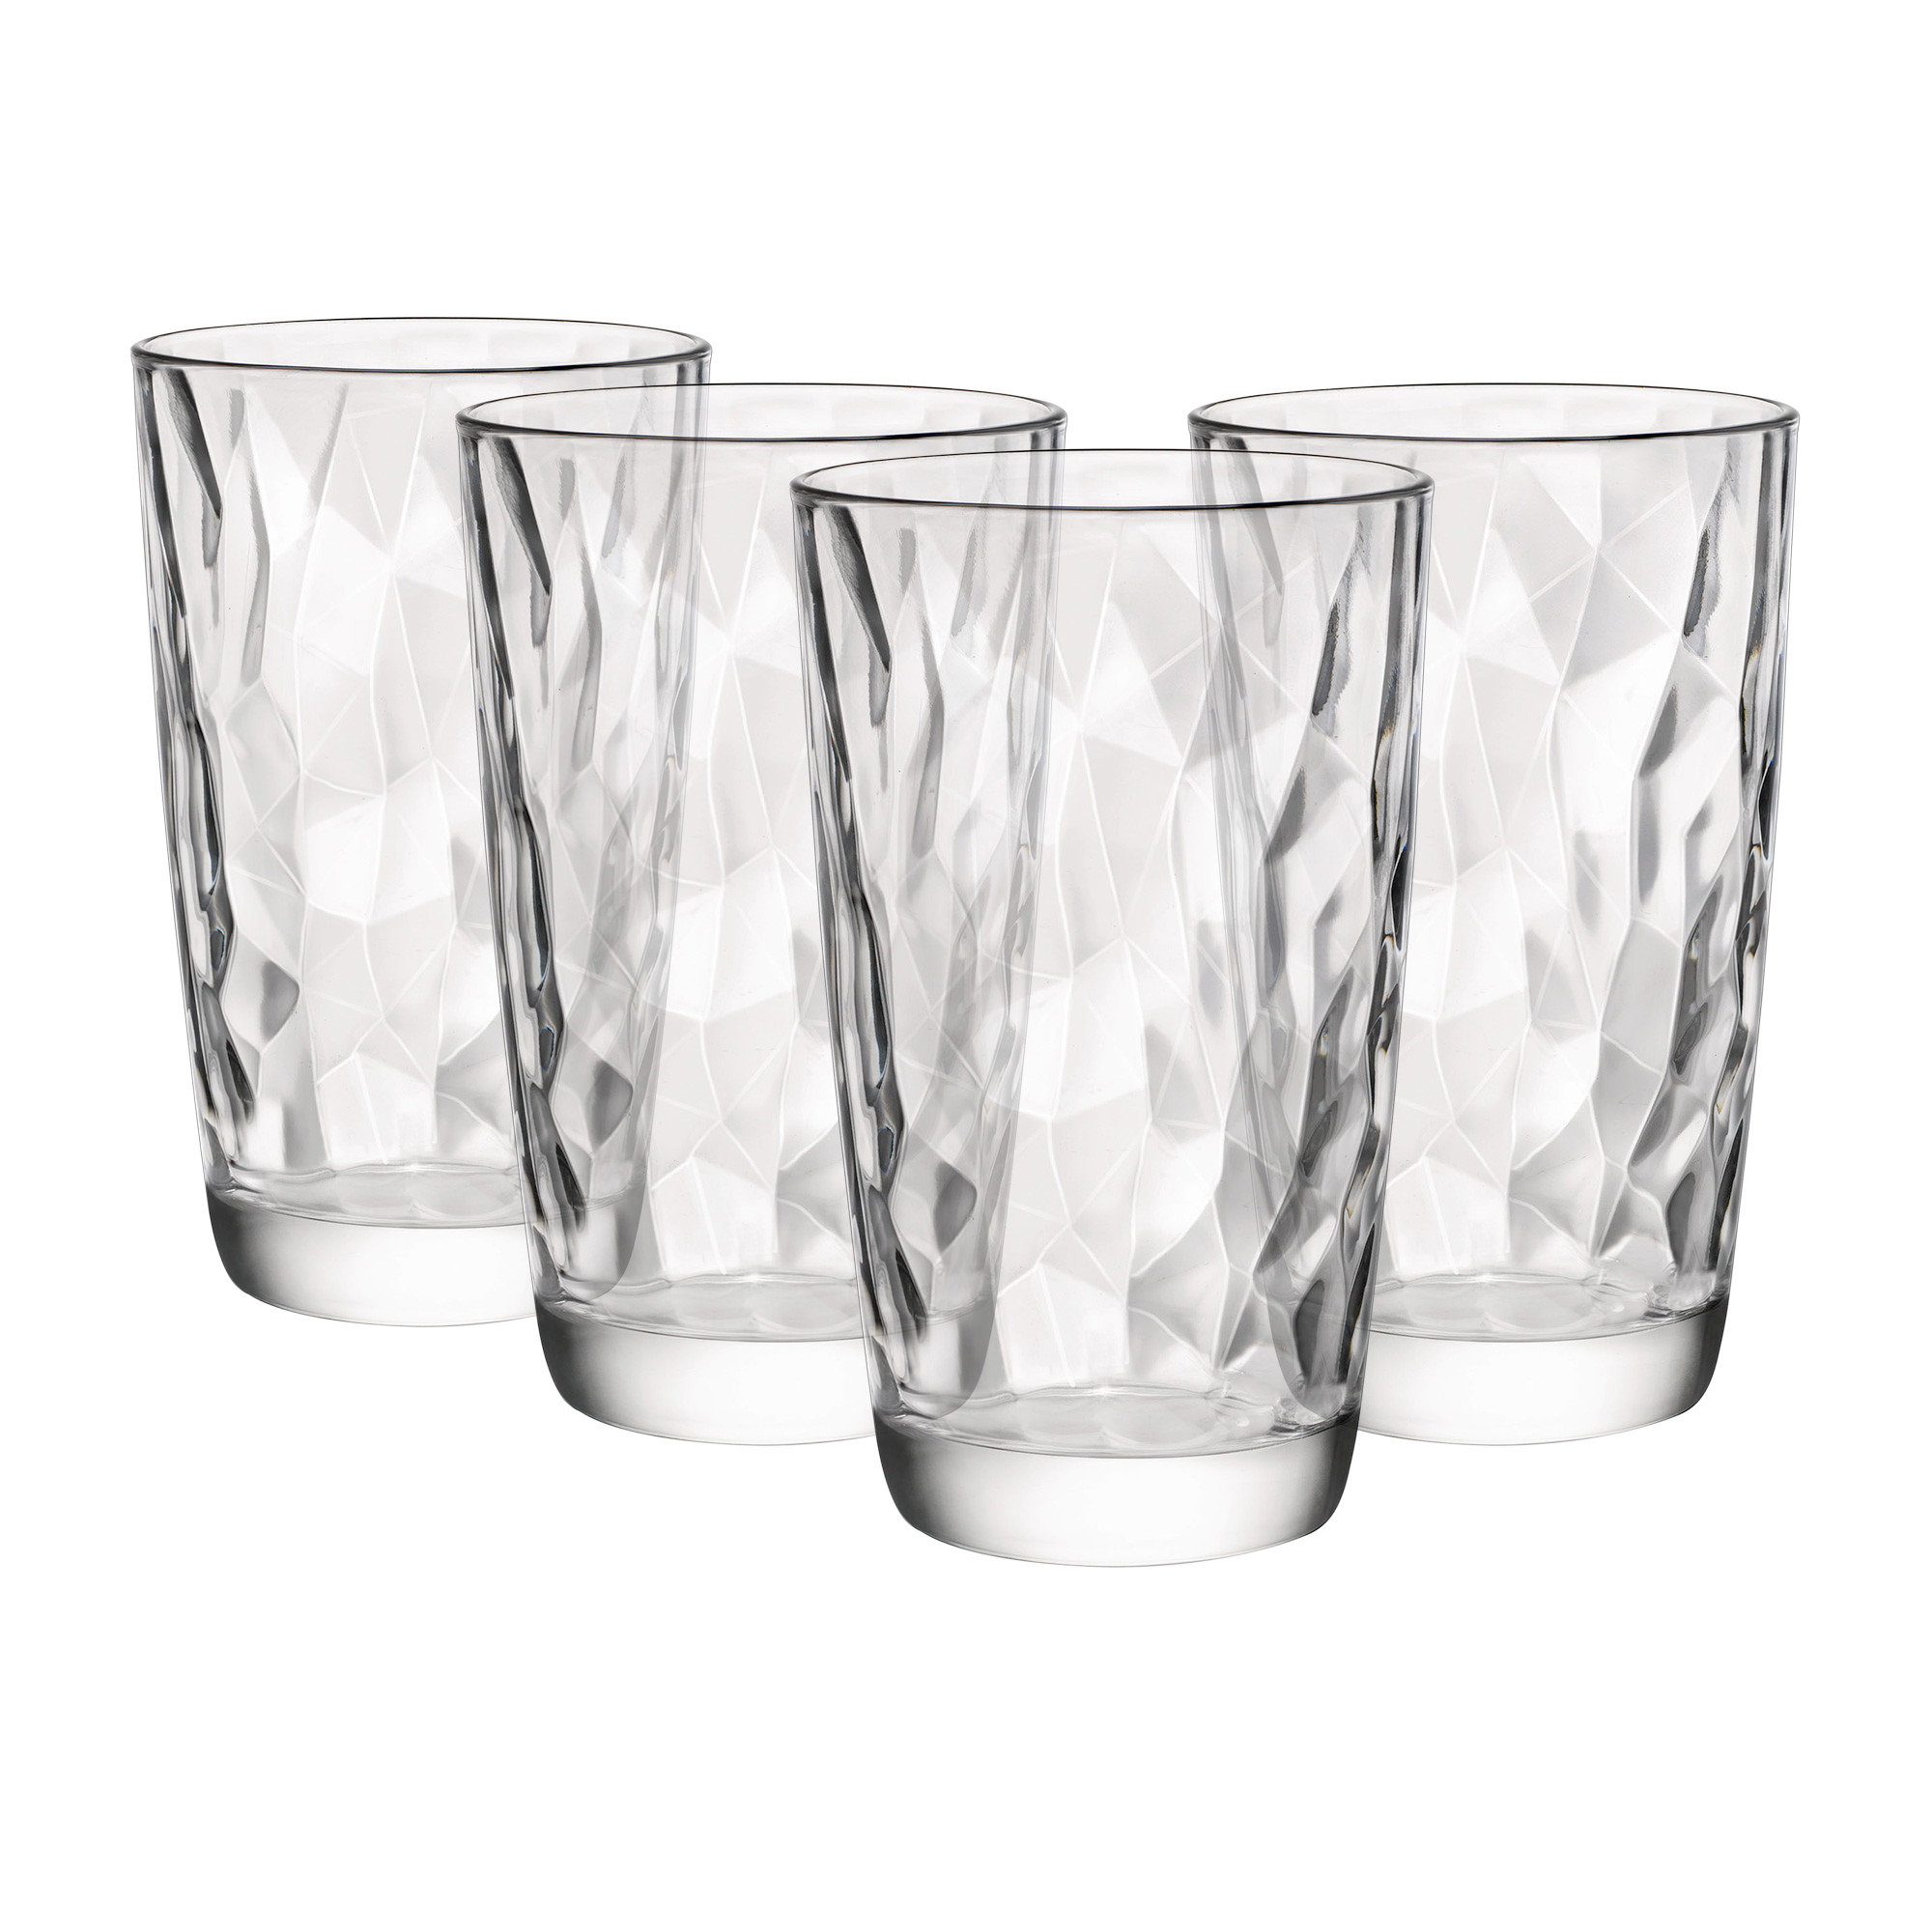 Bormioli Rocco Diamond 4pc Cooler Glass Set 470ml